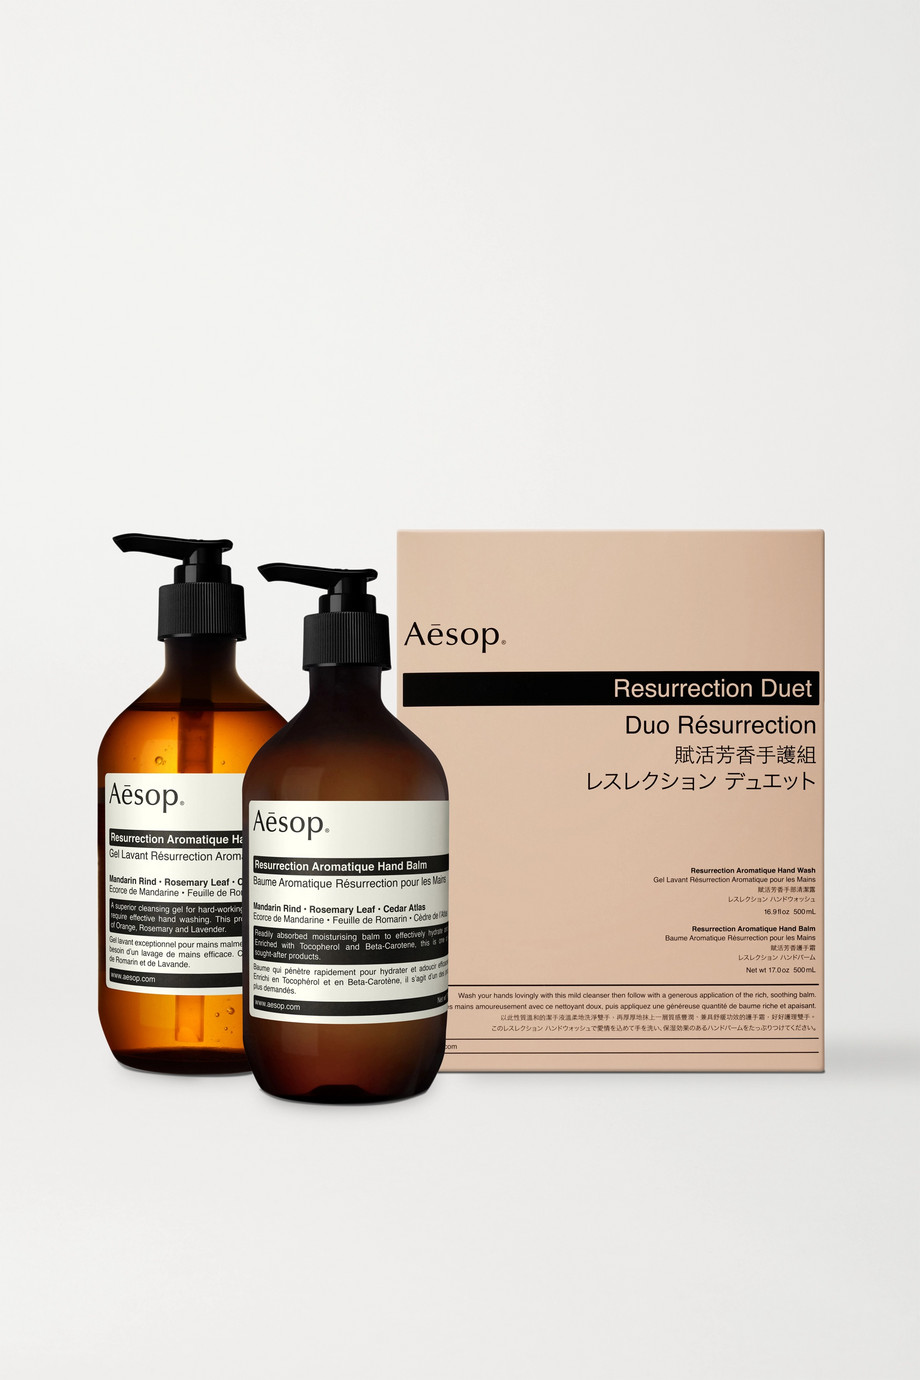 Aesop Resurrection Duet, 2 x 500ml